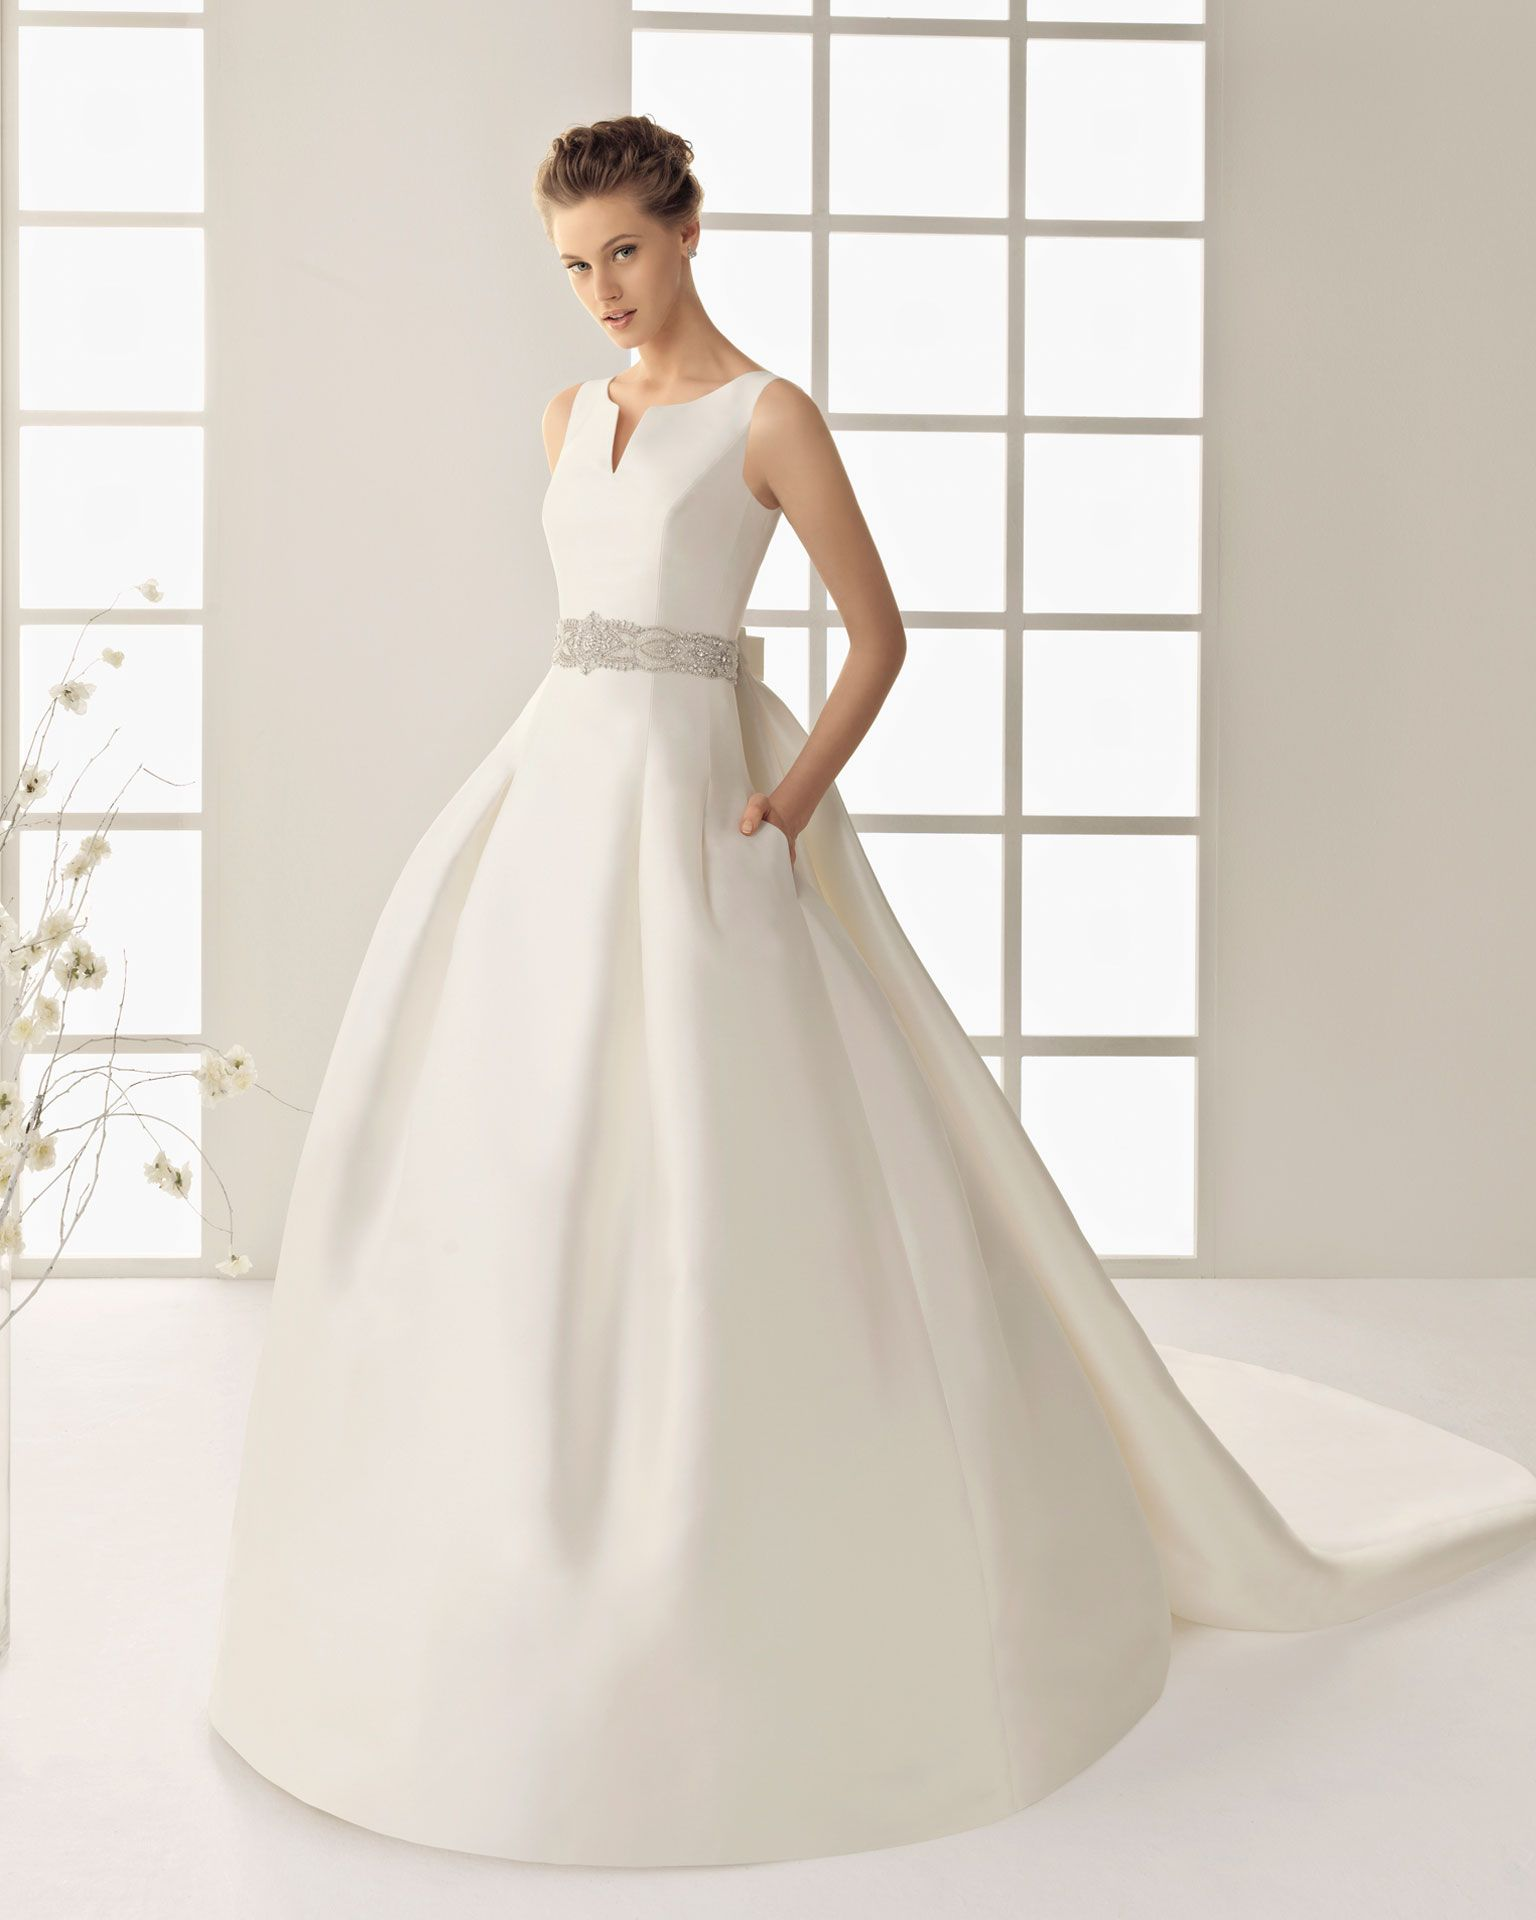 Delfin royal organza and lace gown in ivory x beadwork belt